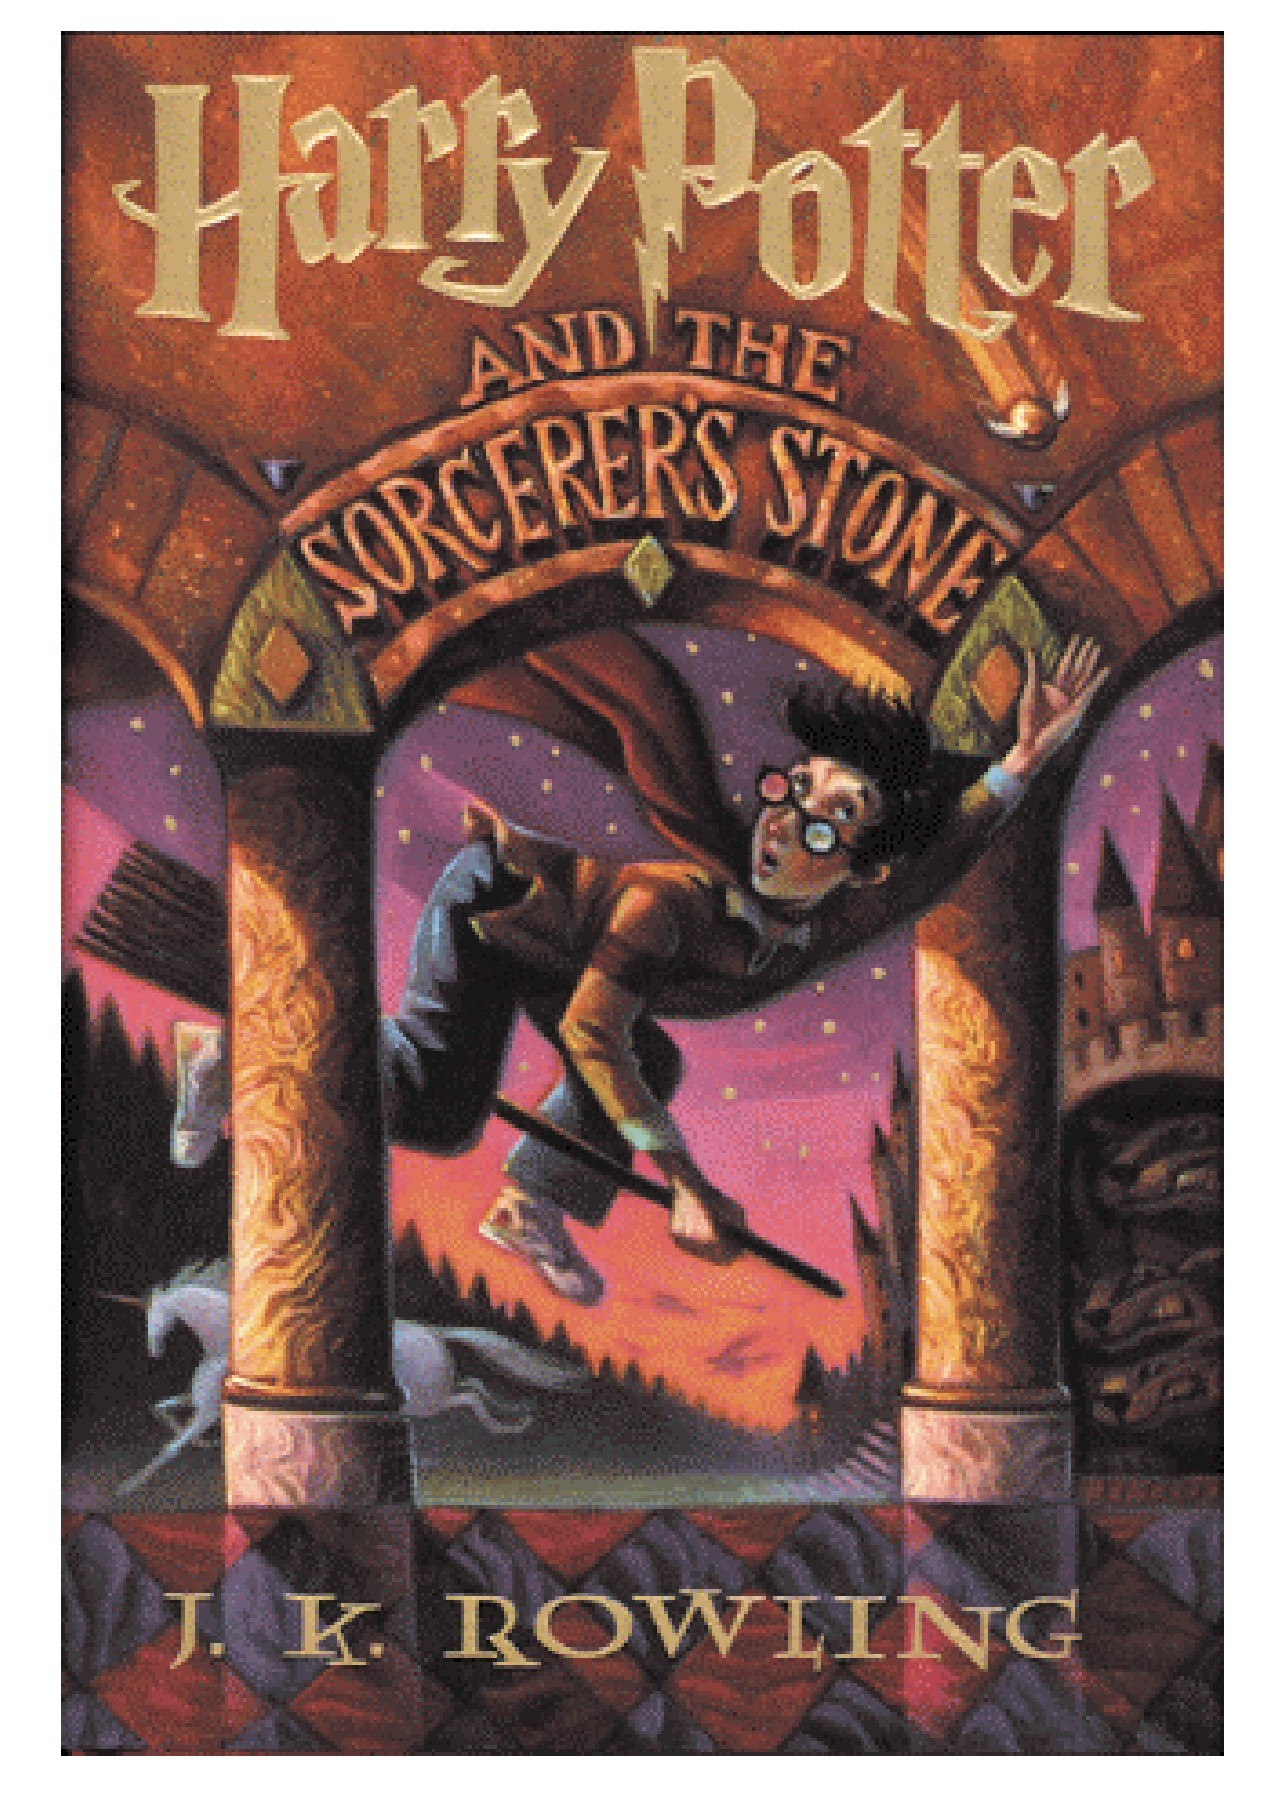 Harry Potter and the Sorcerer's Stone by J.K. Rowling PDF